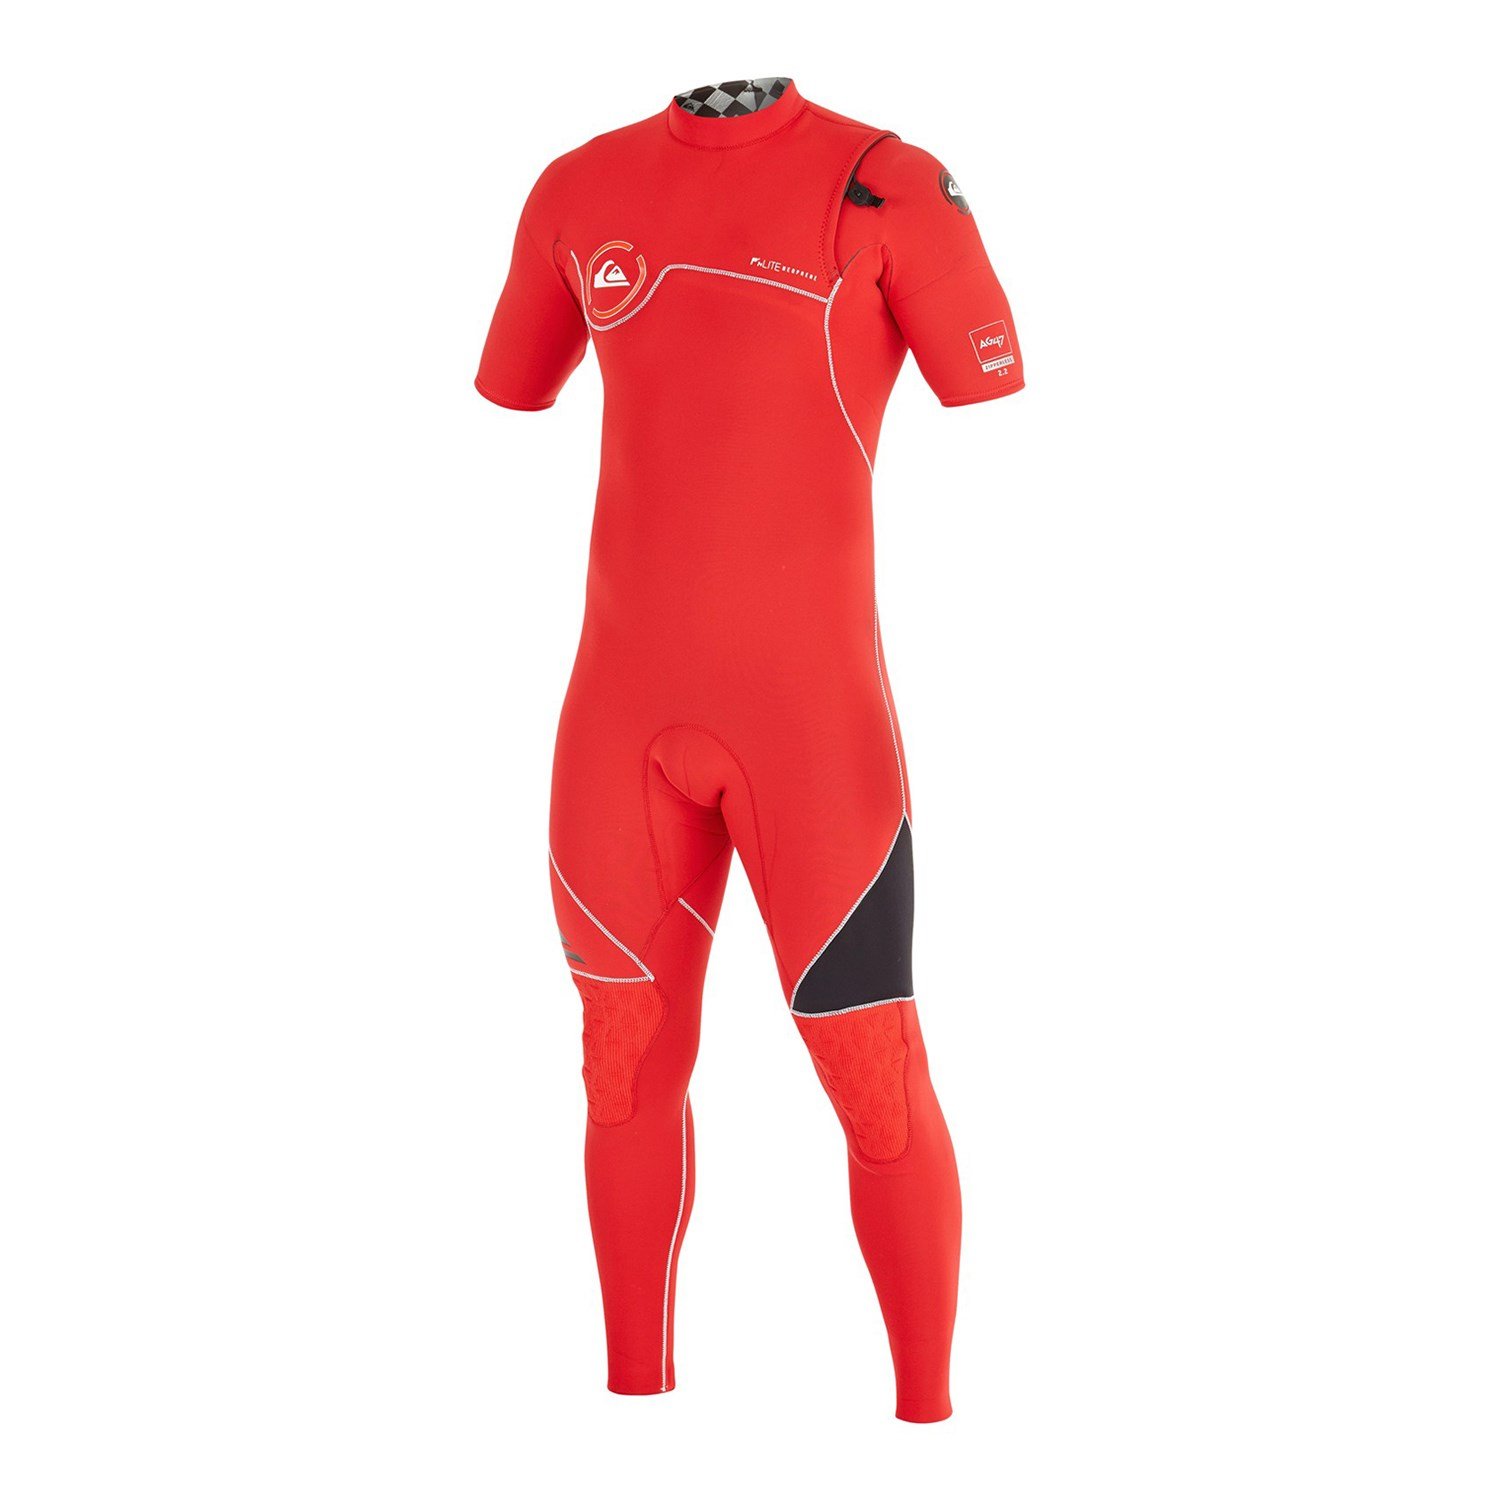 AG_47_ROJO_quiksilver-2mm-Short-sleeve-zipperless-wetsuit-red-black-front